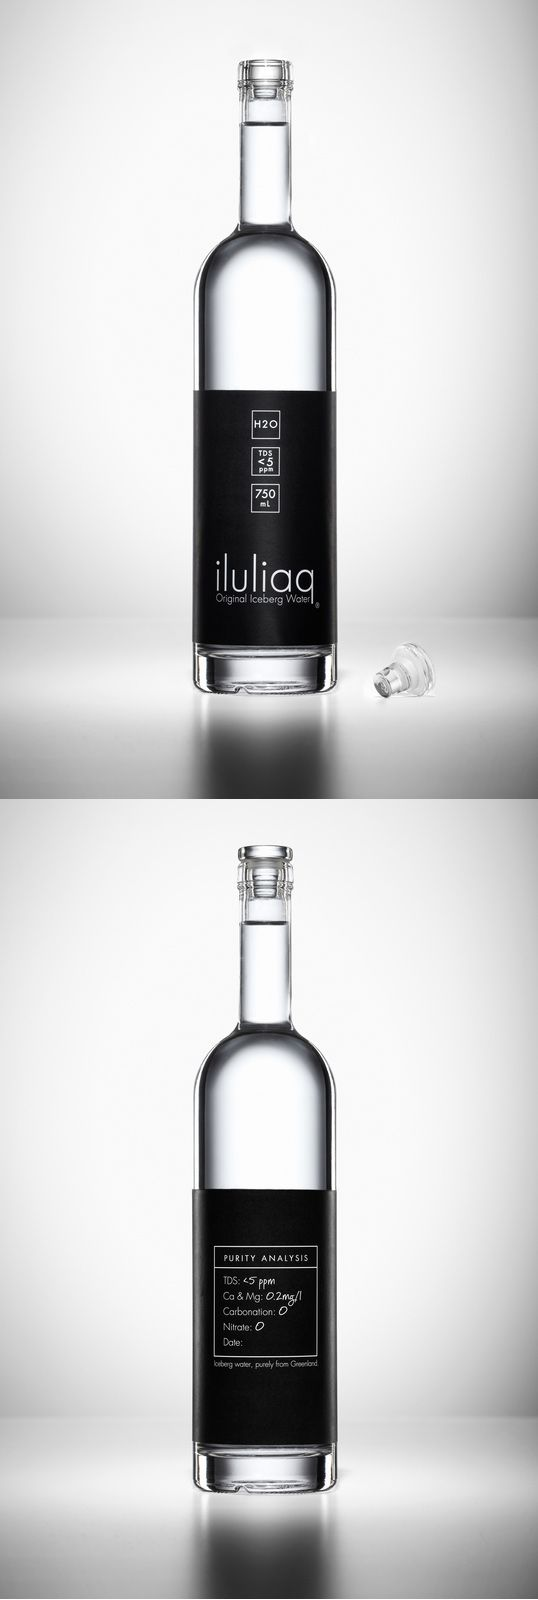 iluliaq Bottled water from Greenland.